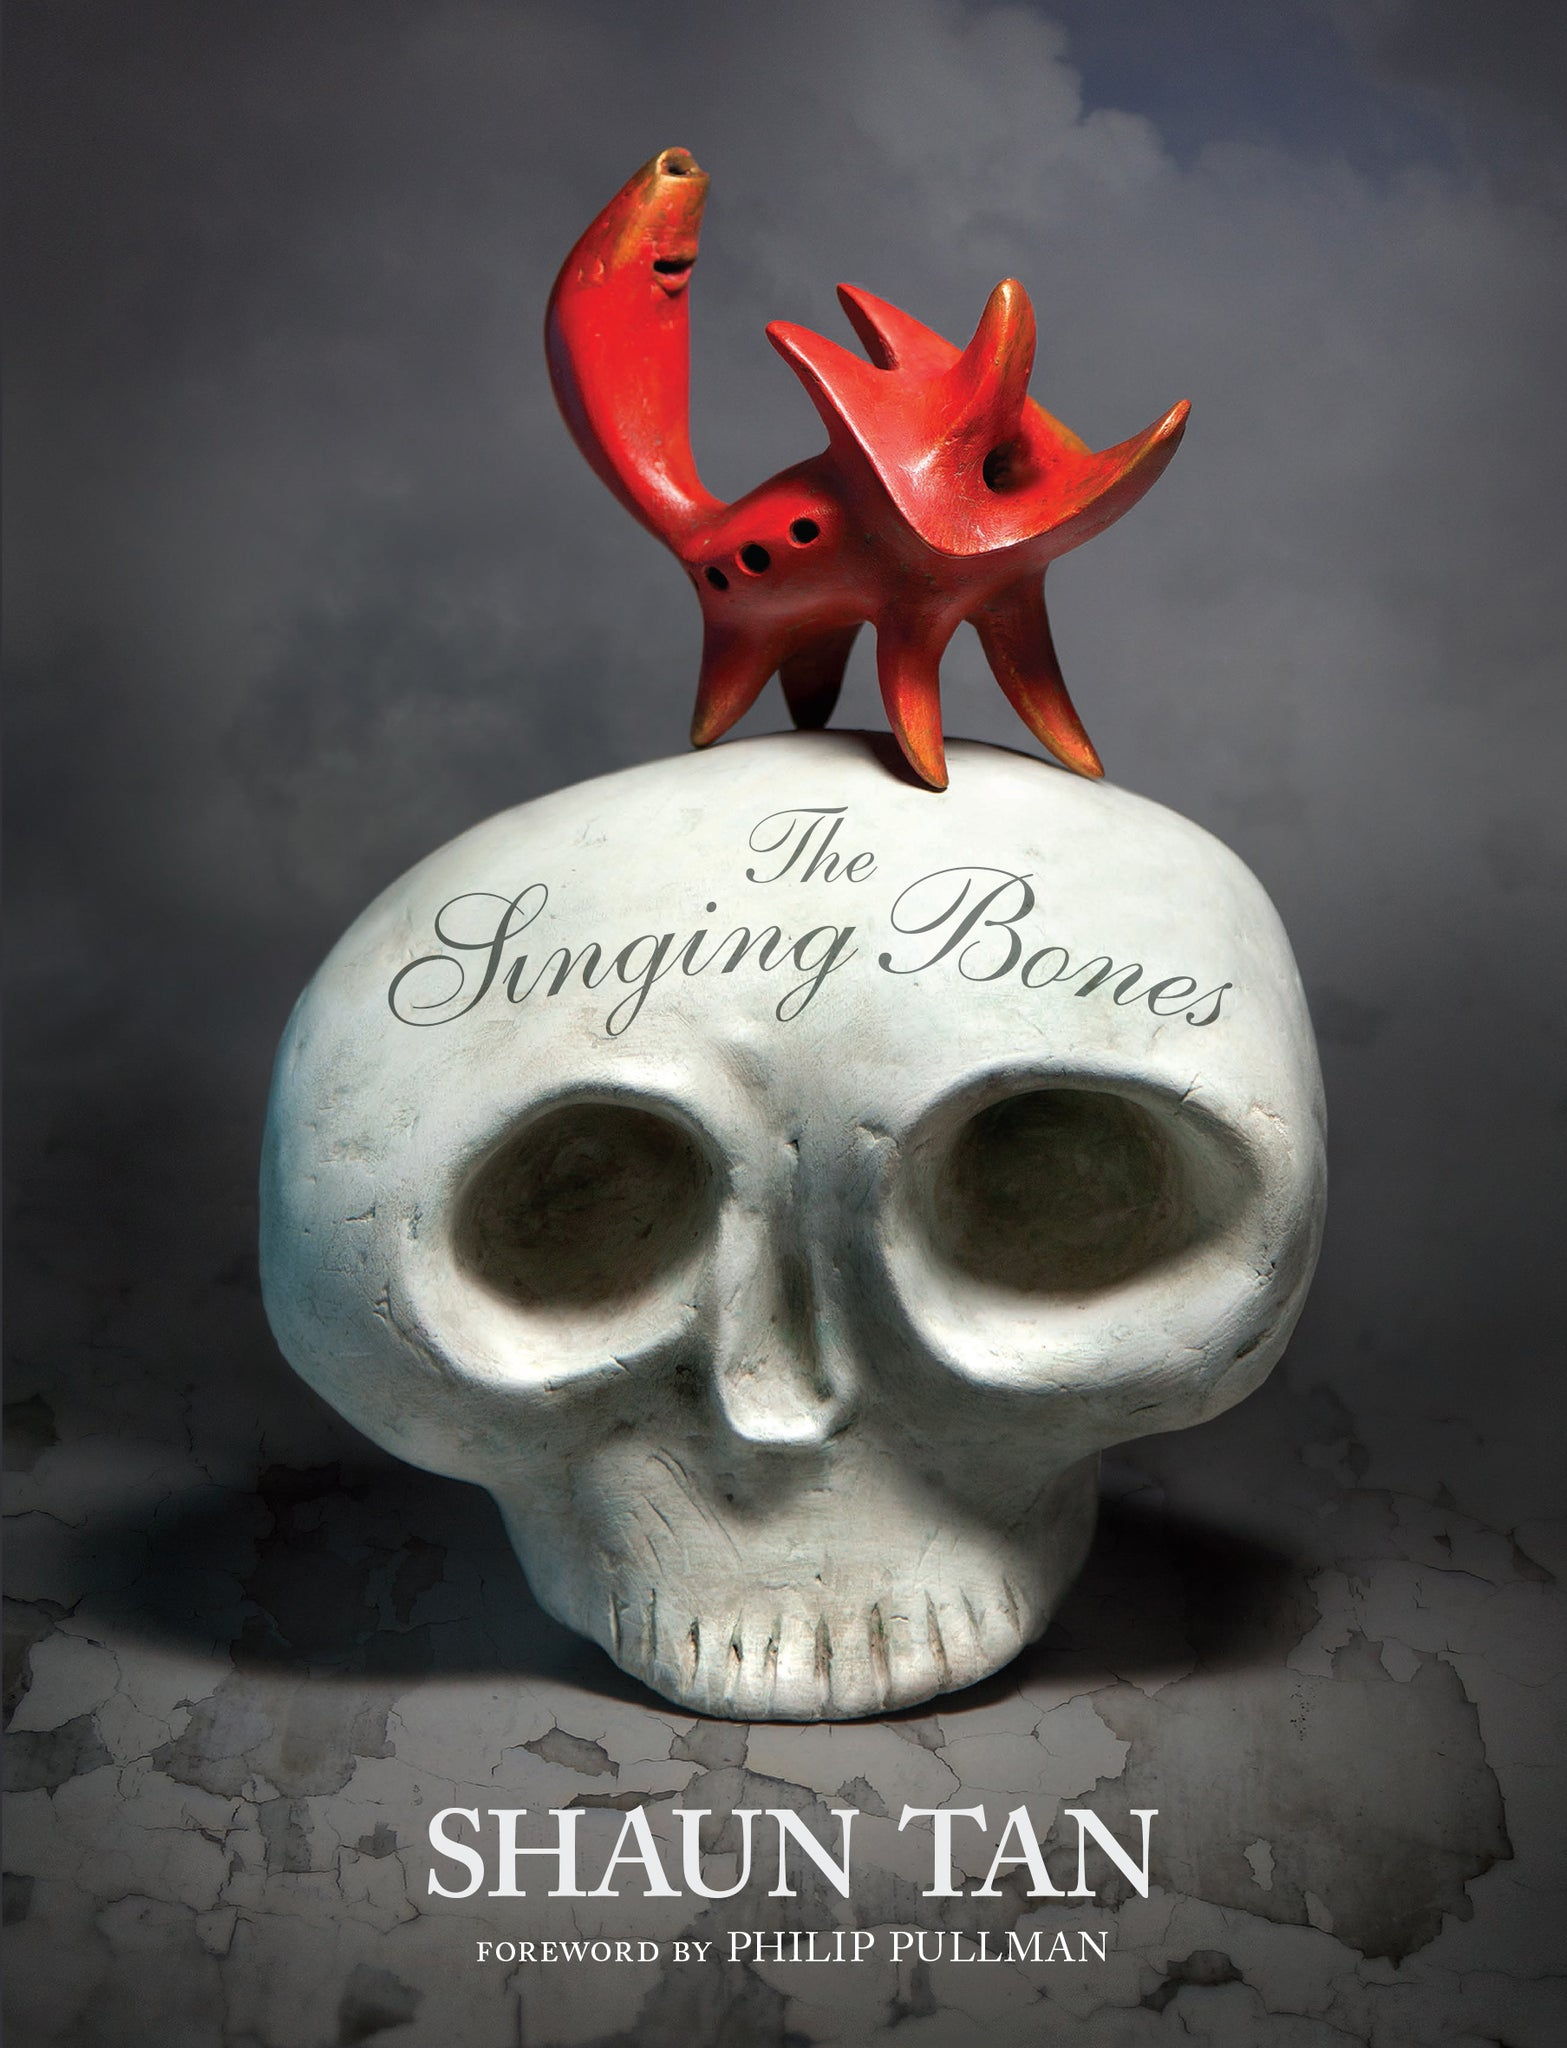 Shaun Tan: The Singing Bones